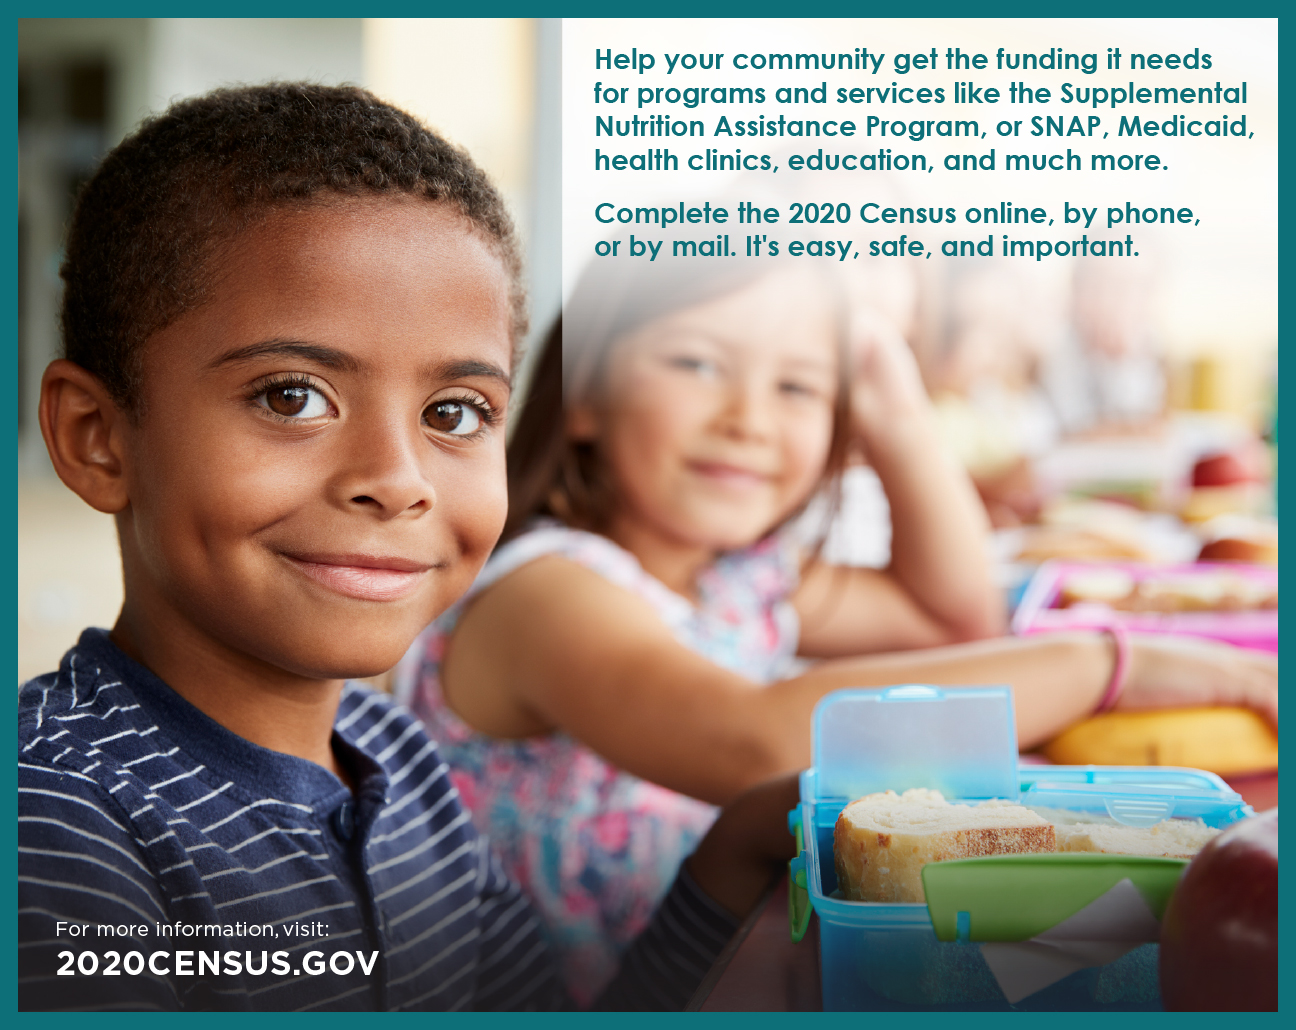 2020 Census - Be Counted!